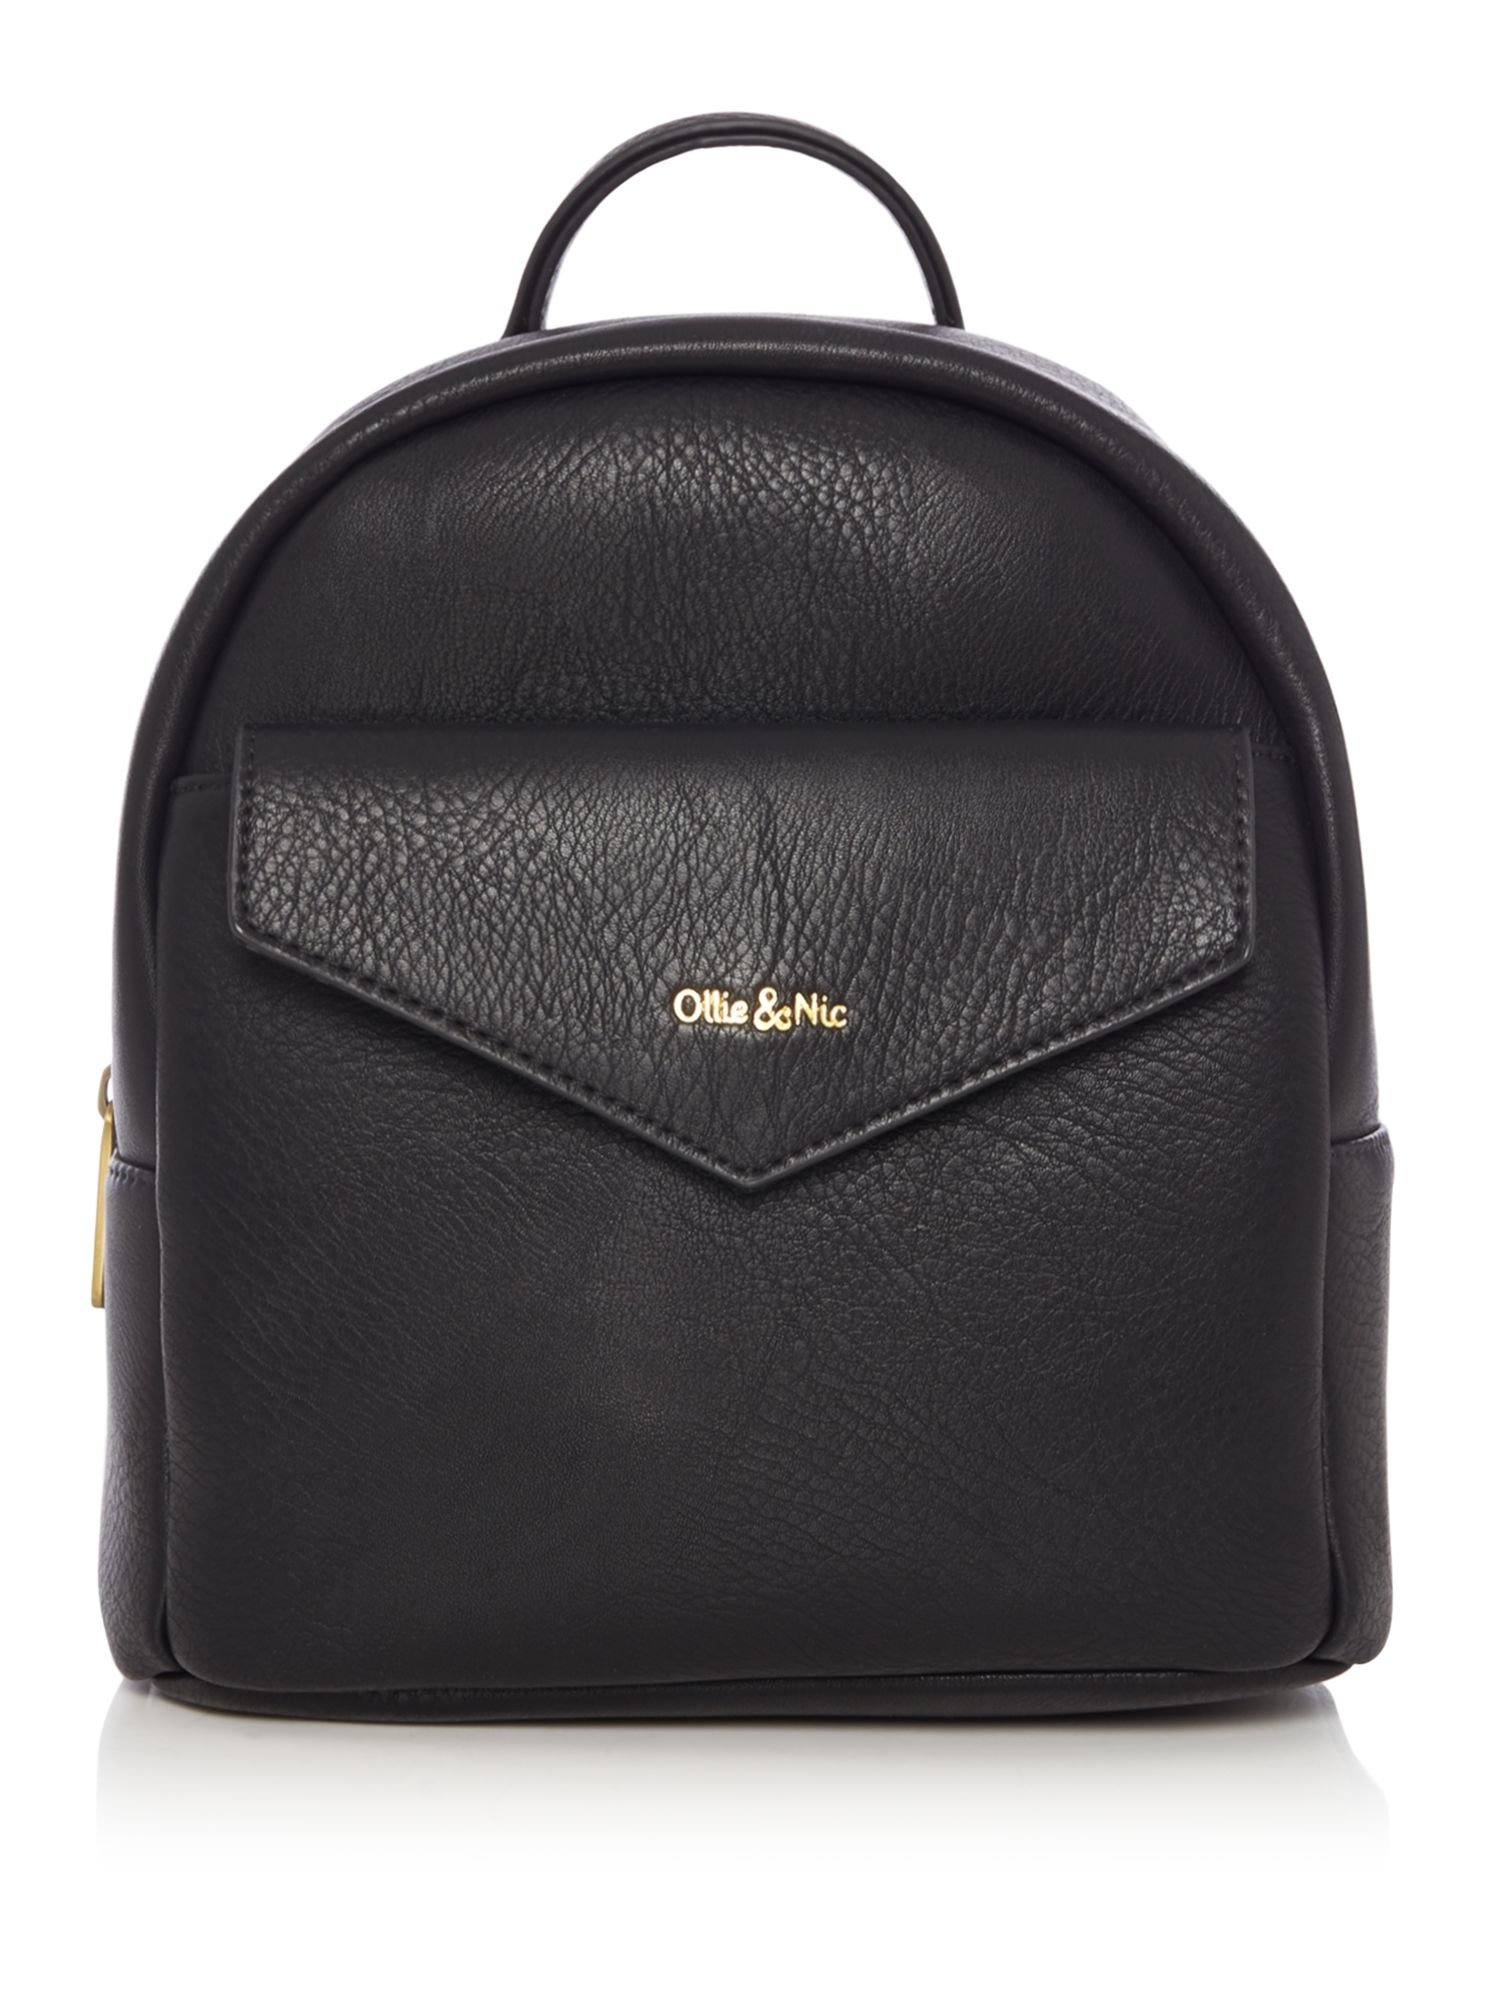 Ollie & Nic Eddy mini backpack, Black